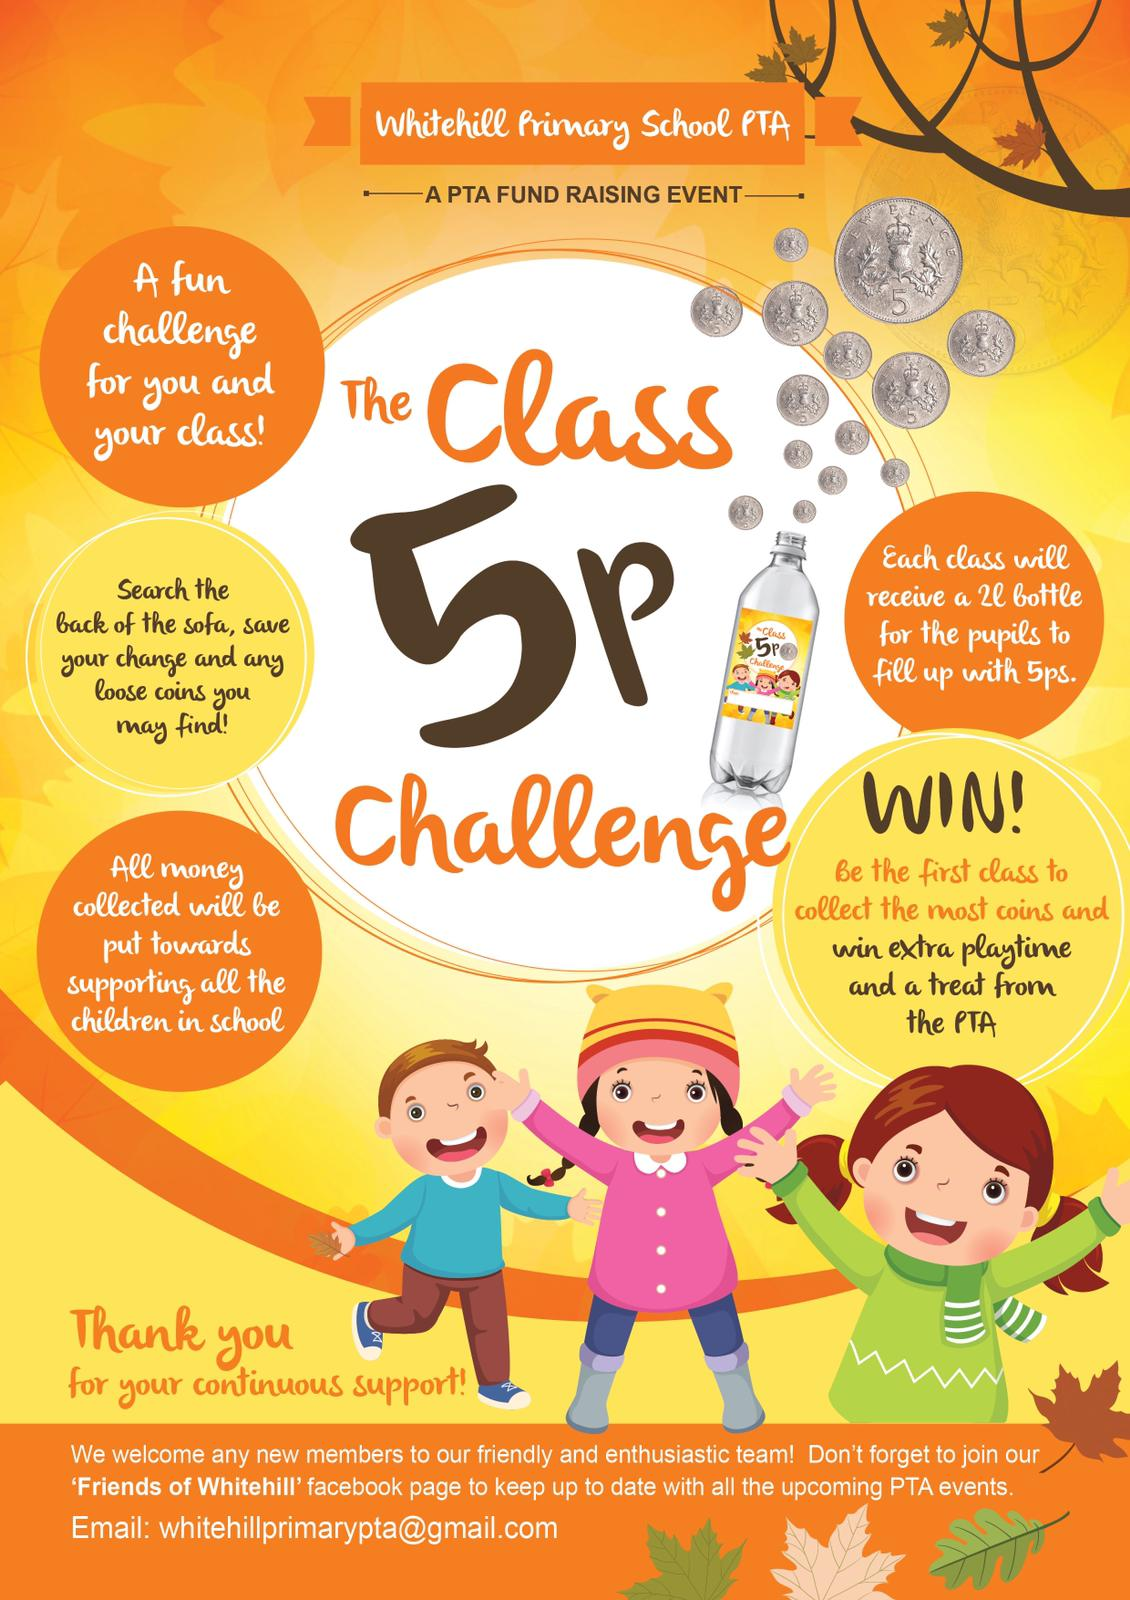 The Class 5p Challenge